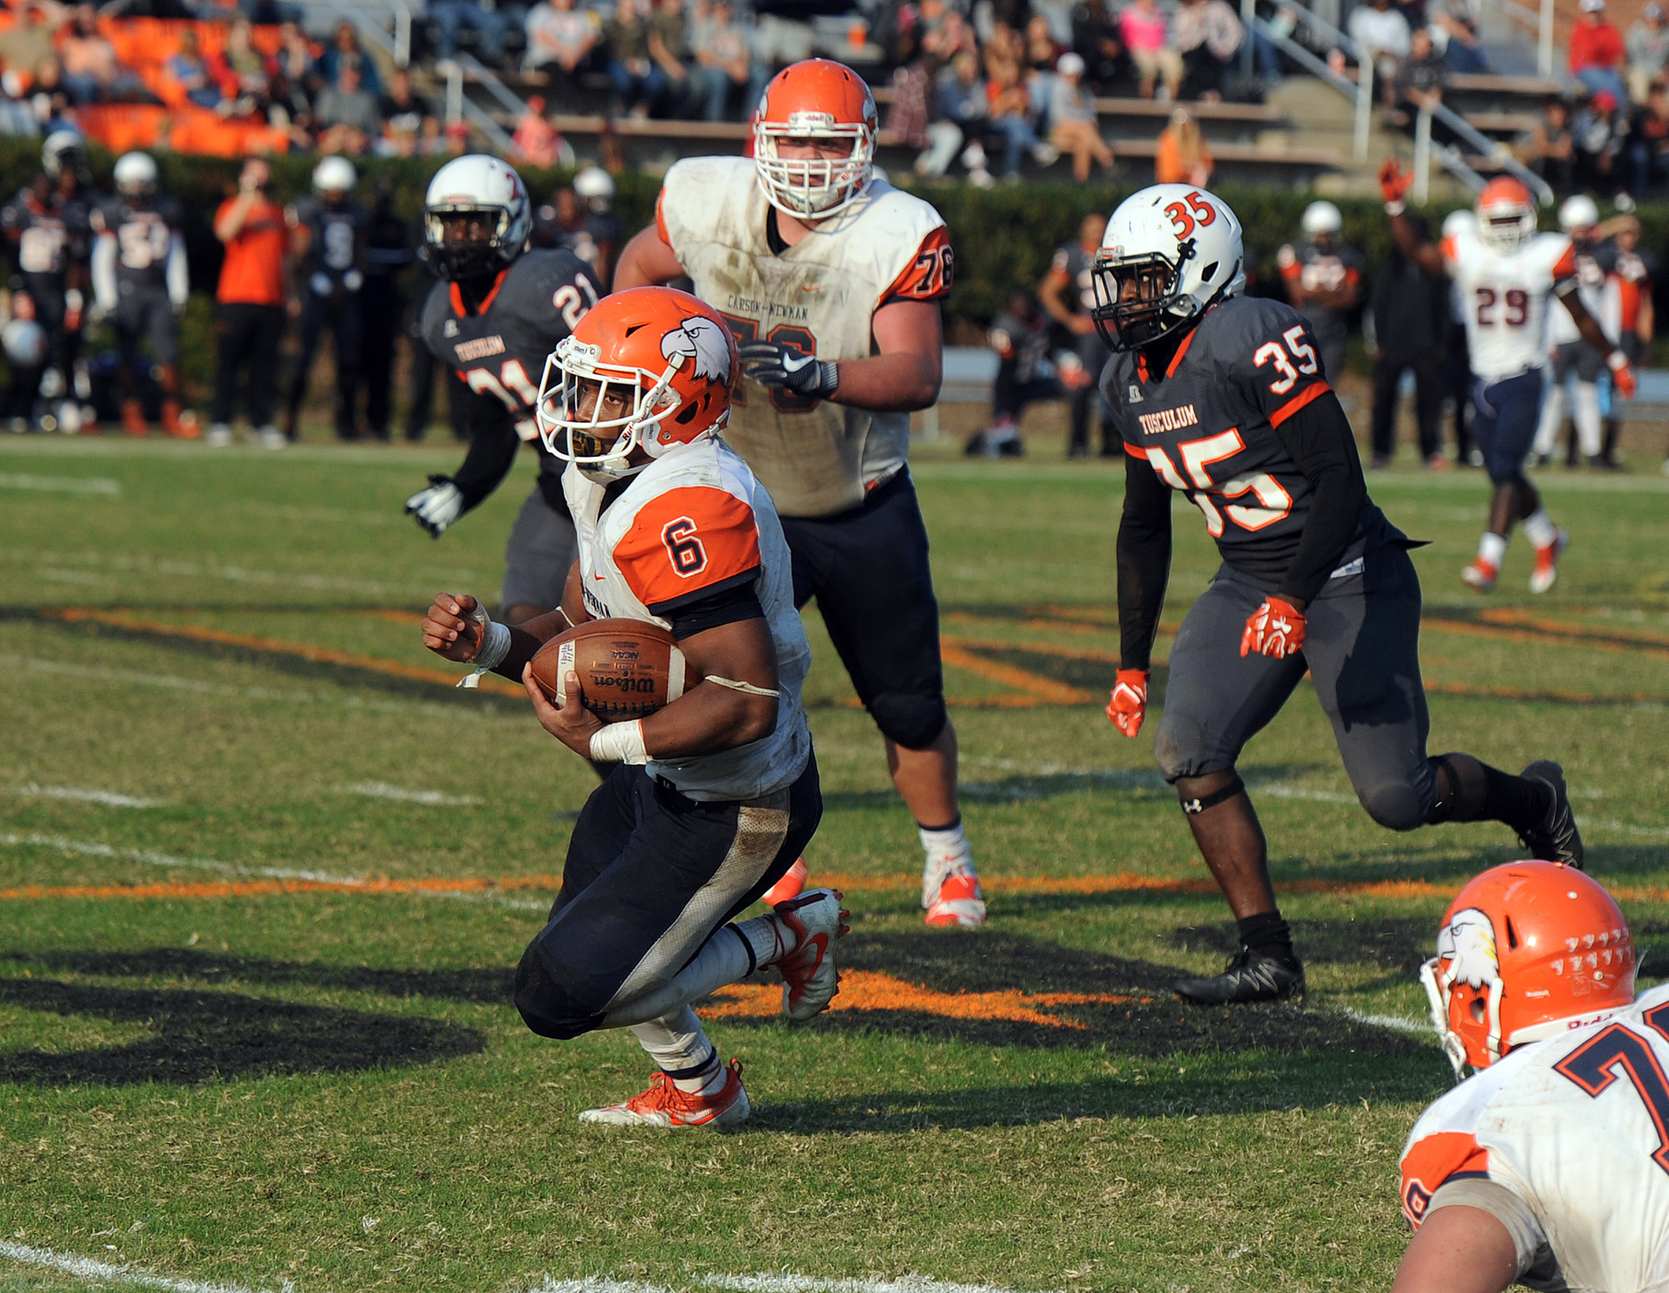 Carson-Newman Football releases preseason hype video - Believe